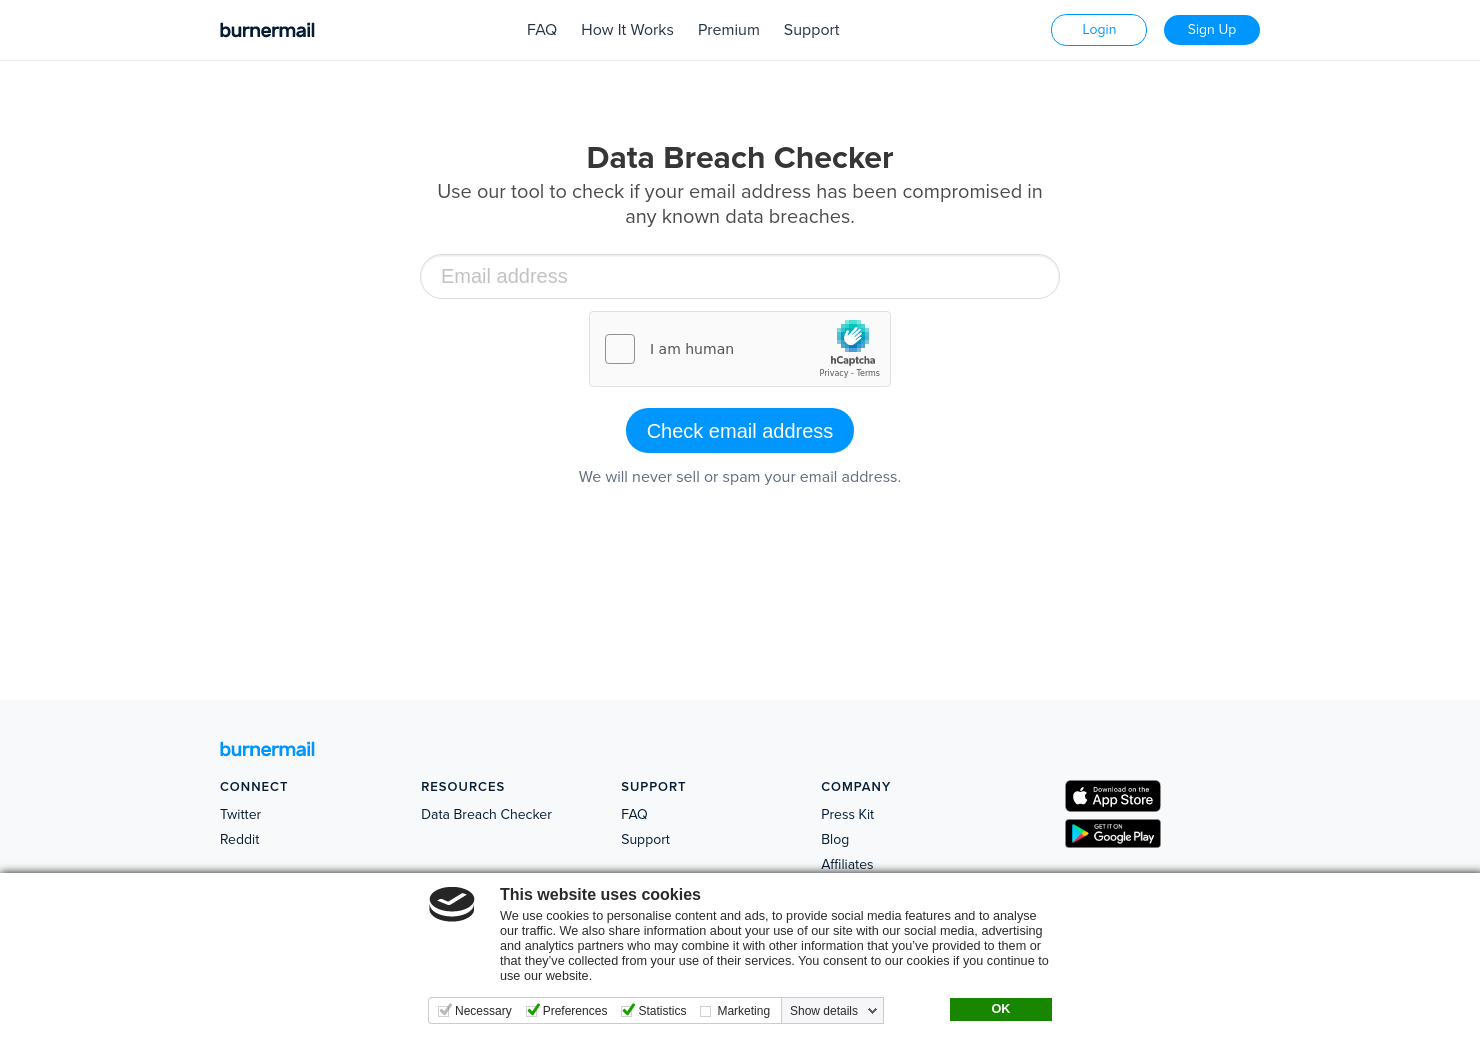 Data Breach Checker